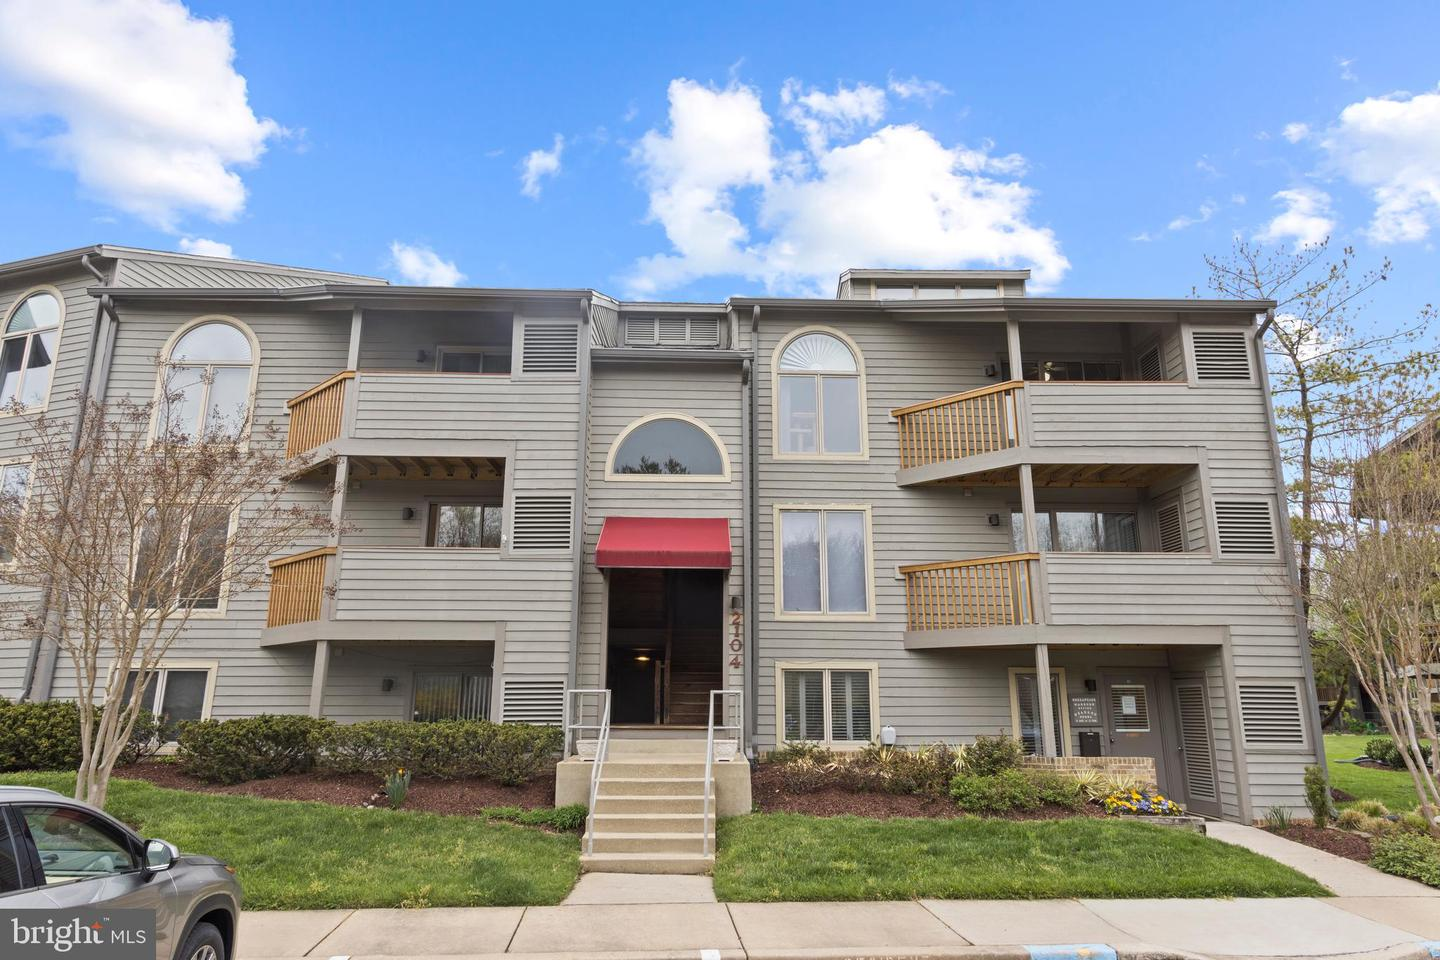 2104 Chesapeake Harbour Drive  #102 - Annapolis, Maryland 21403